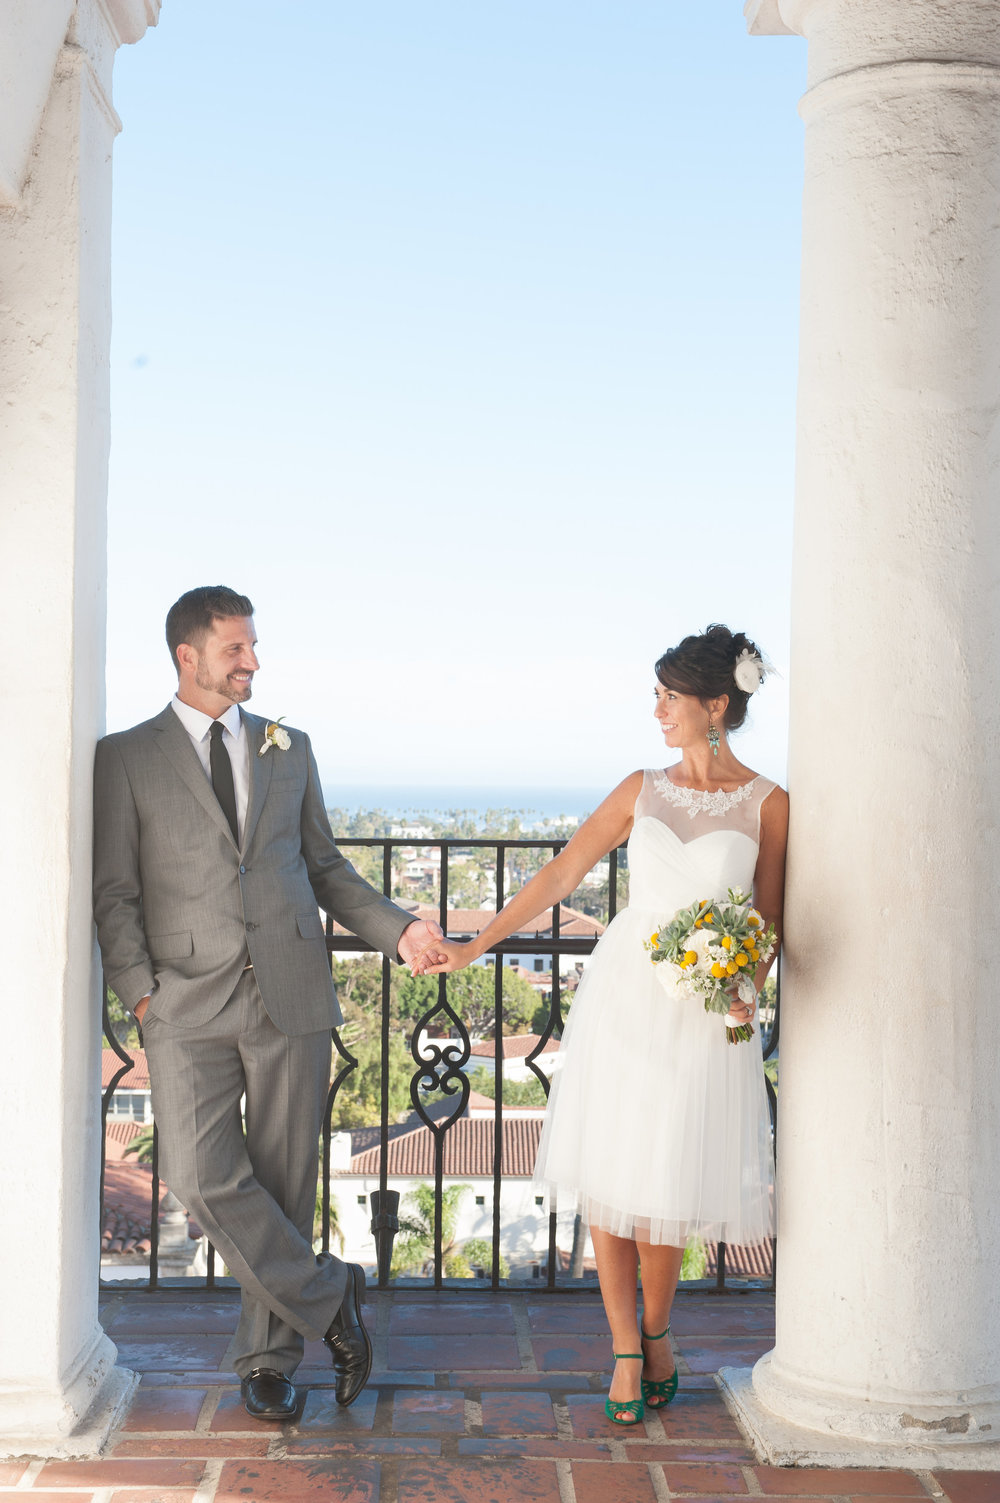 santabarbarawedding.com | Photo: By Cherry Photography | elopement locations